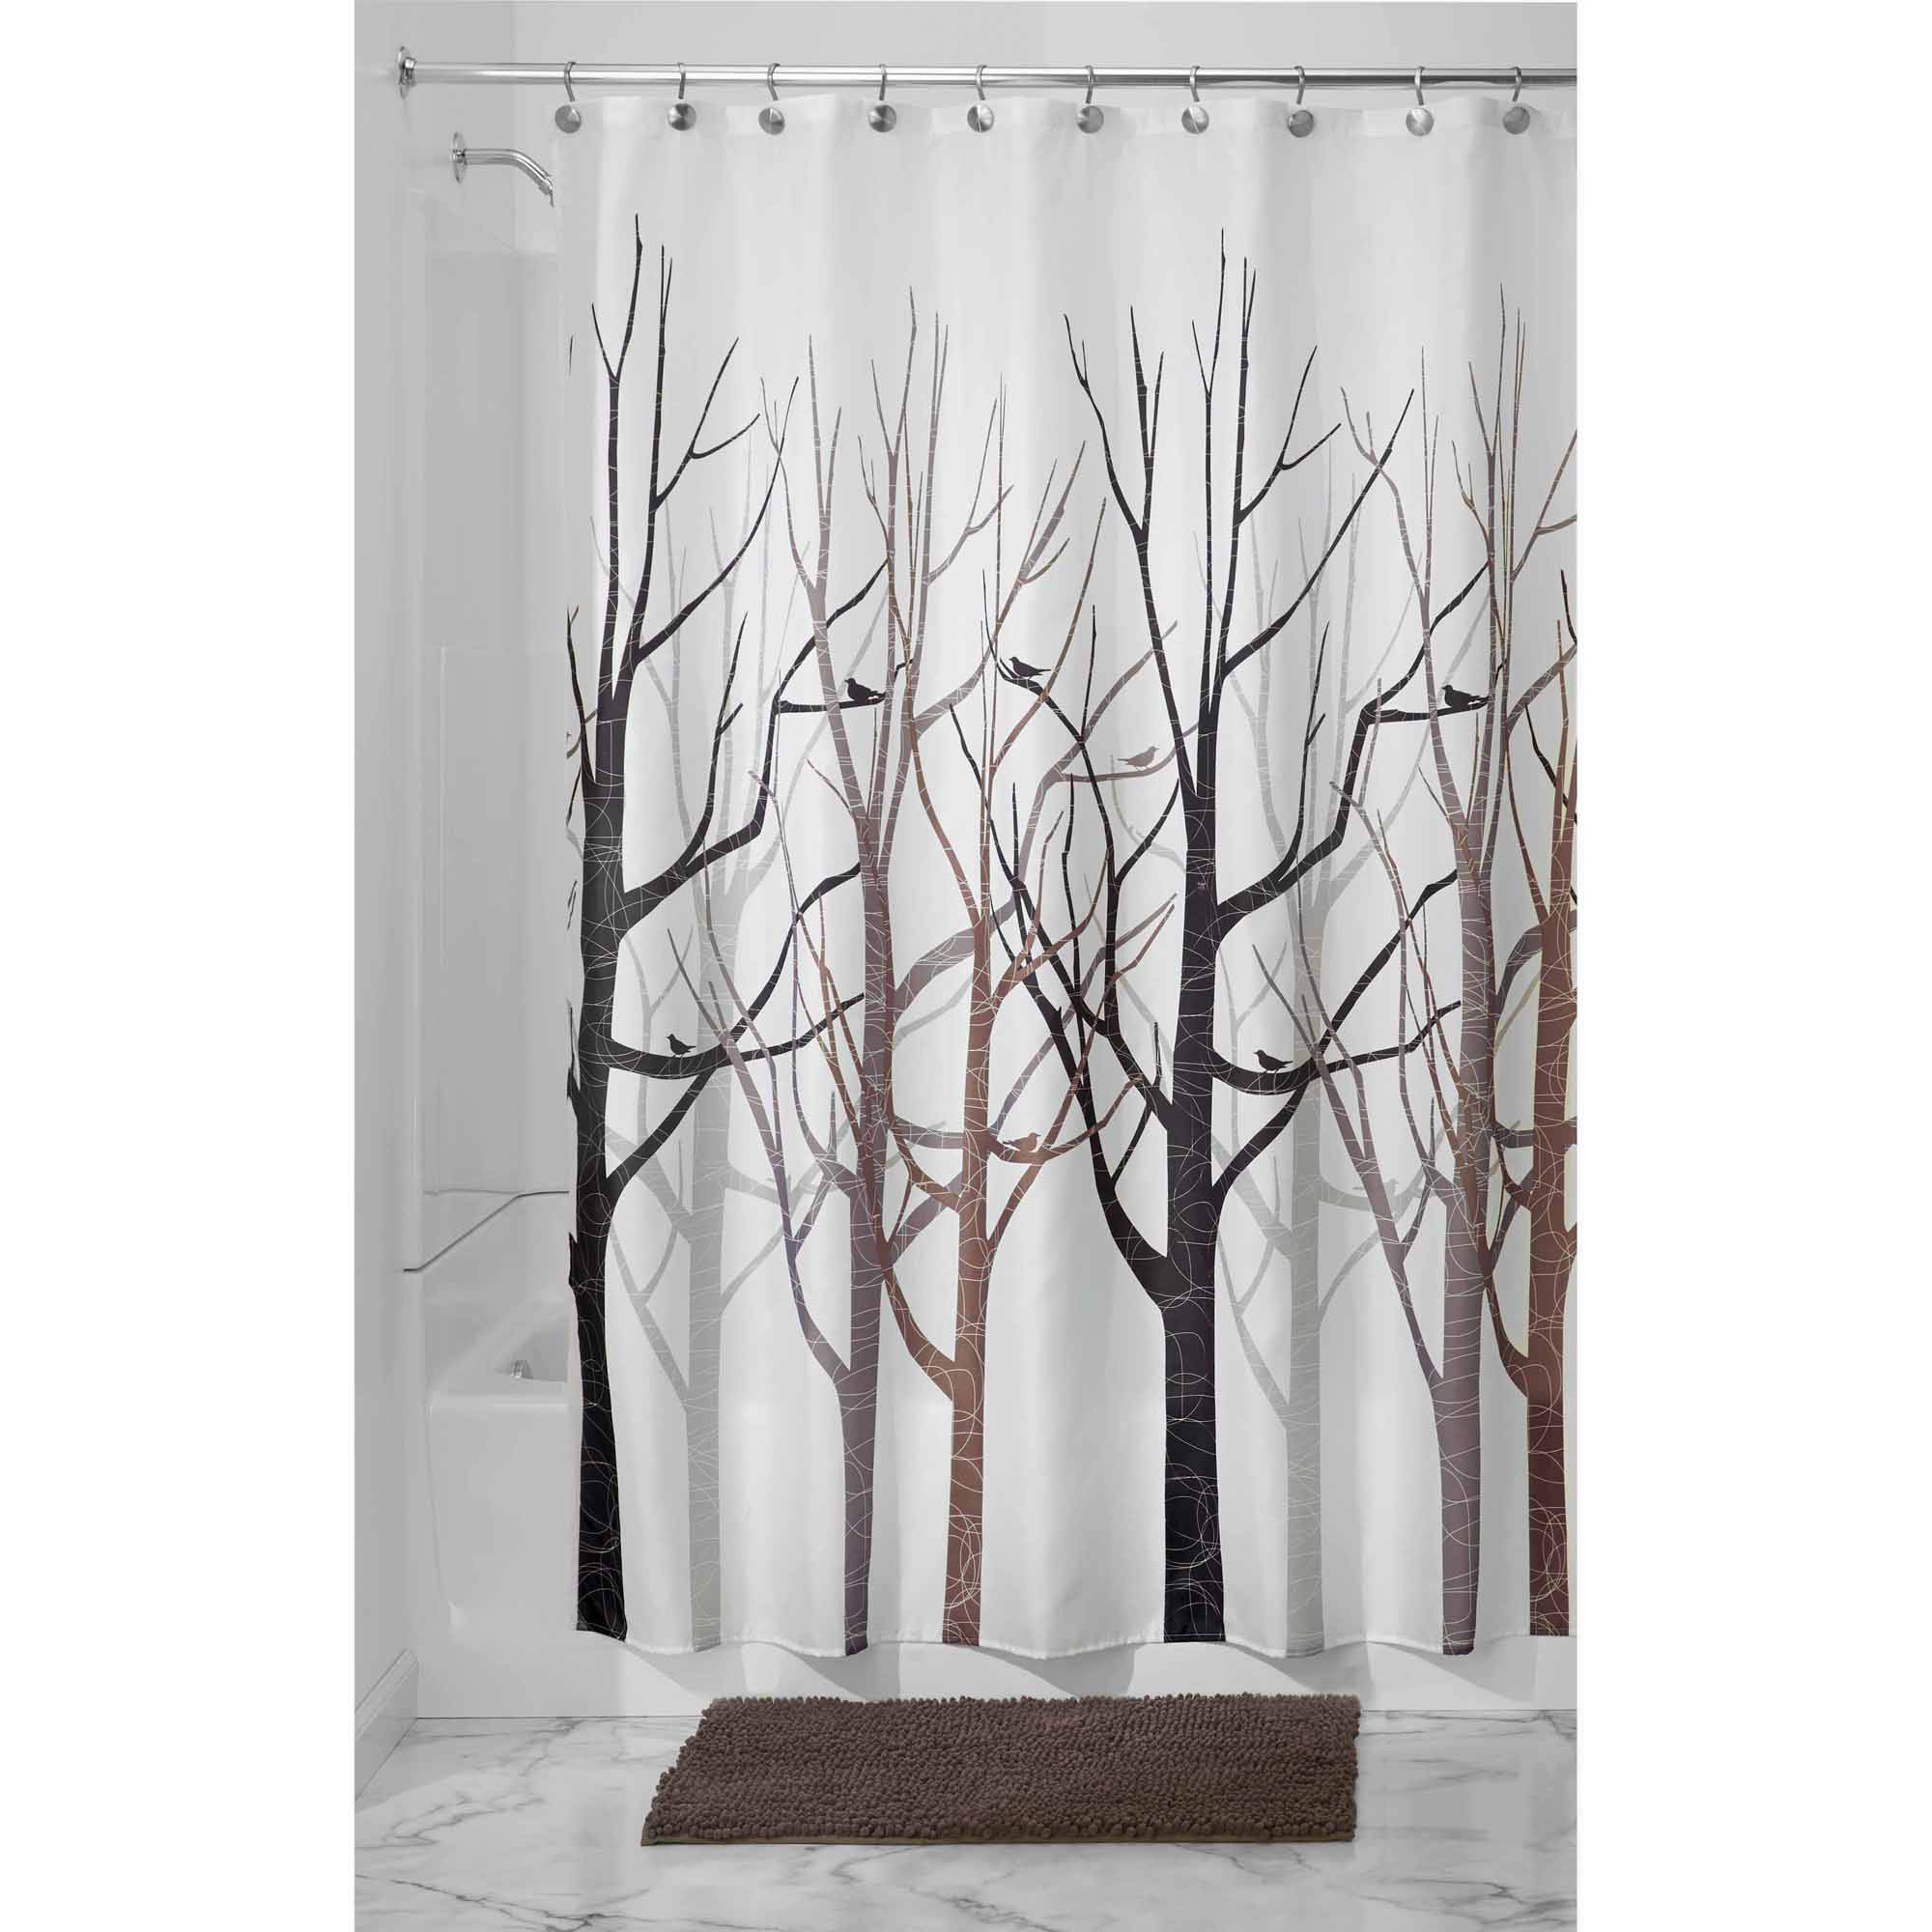 "InterDesign Forest Fabric Shower Curtain, 72"" x 72"", Black/Gray"